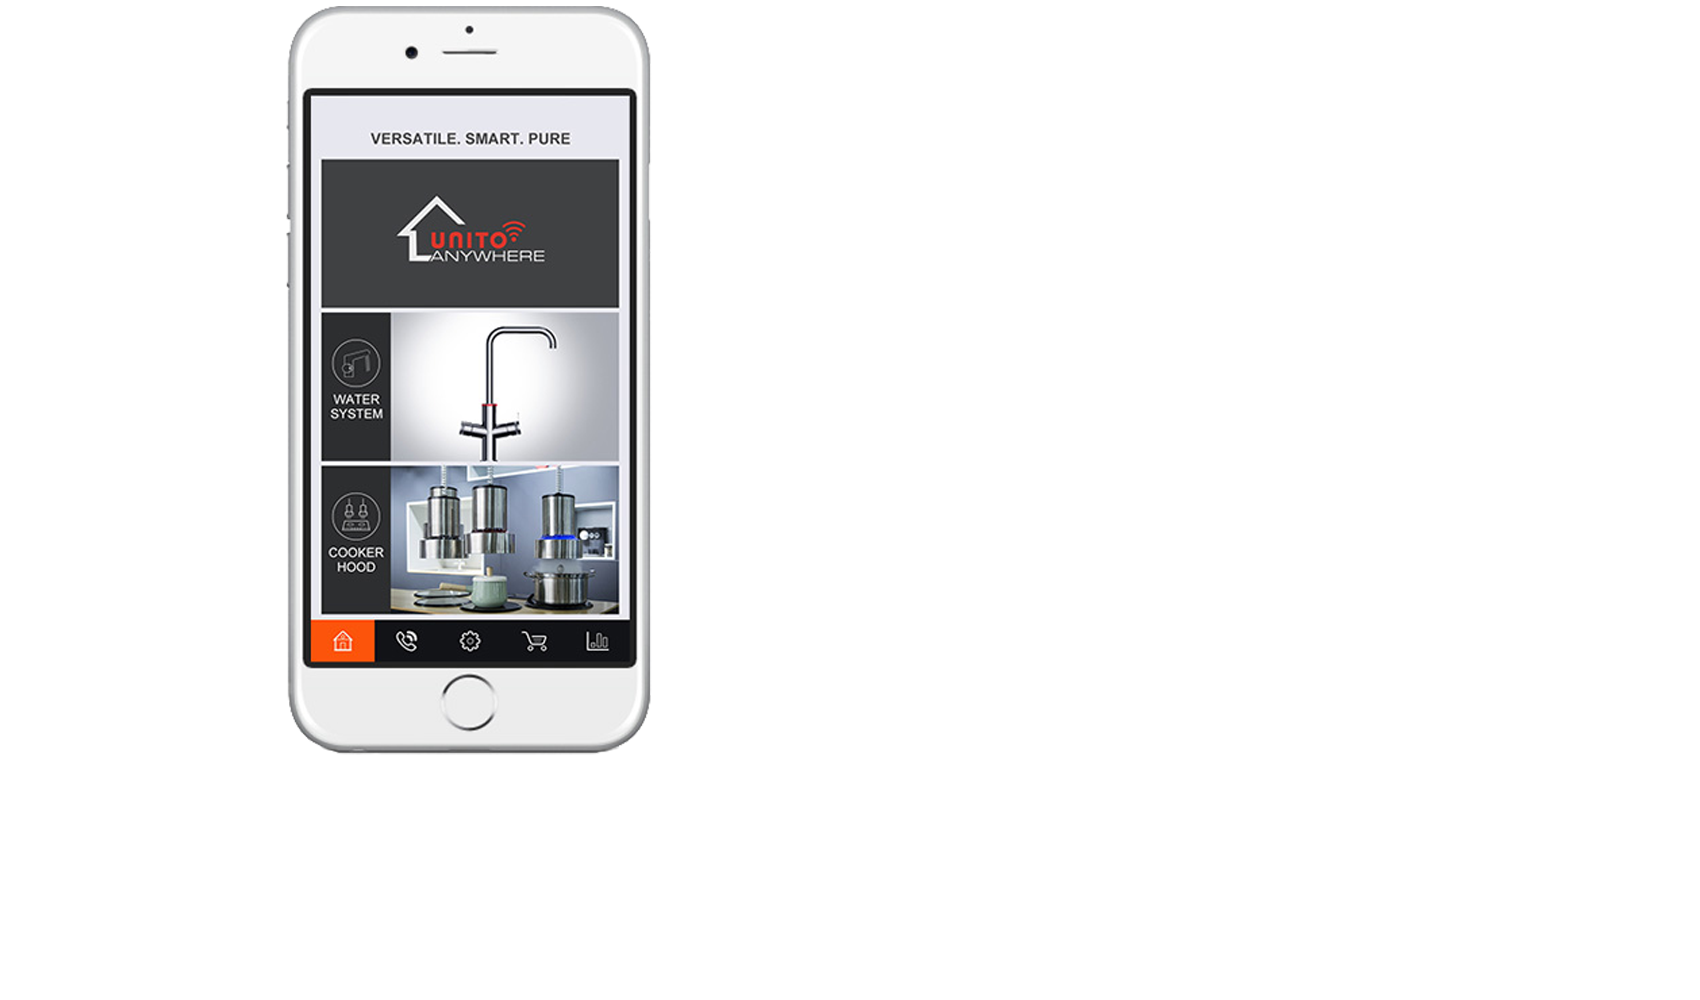 Kitchen Appliances IoT App